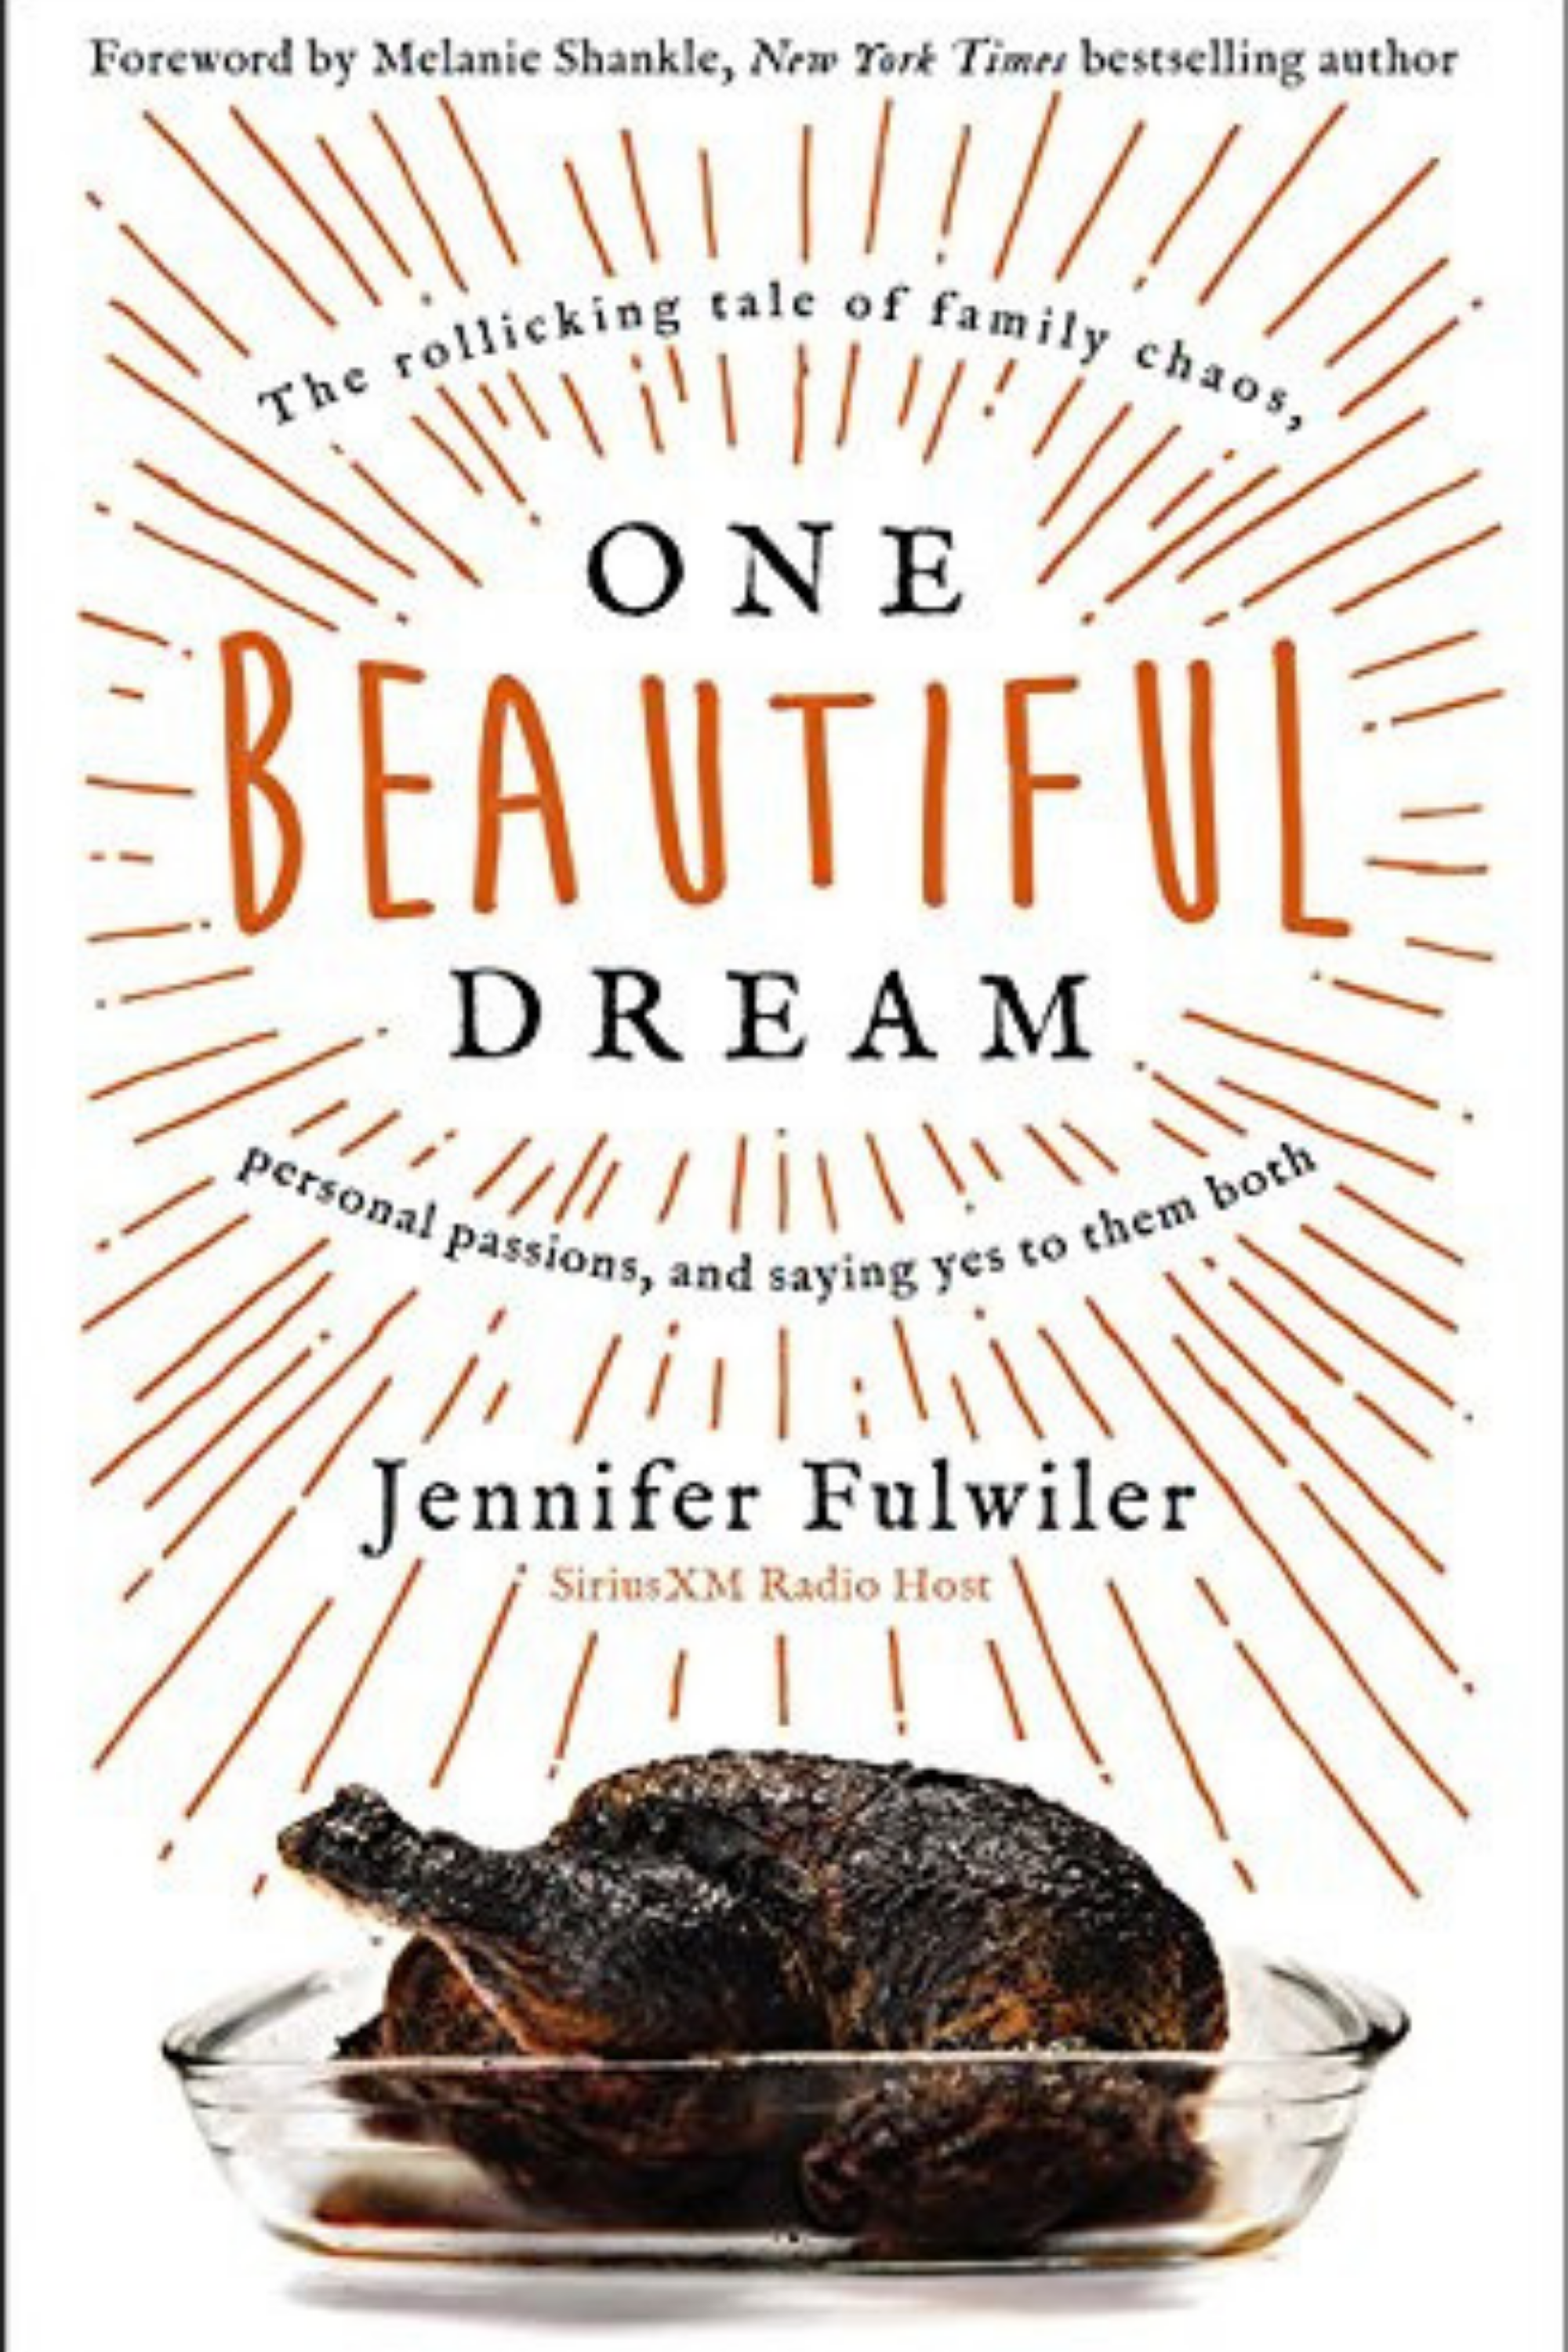 One Beautiful Dream Jennifer Fulwiler Courtney Elmer.png